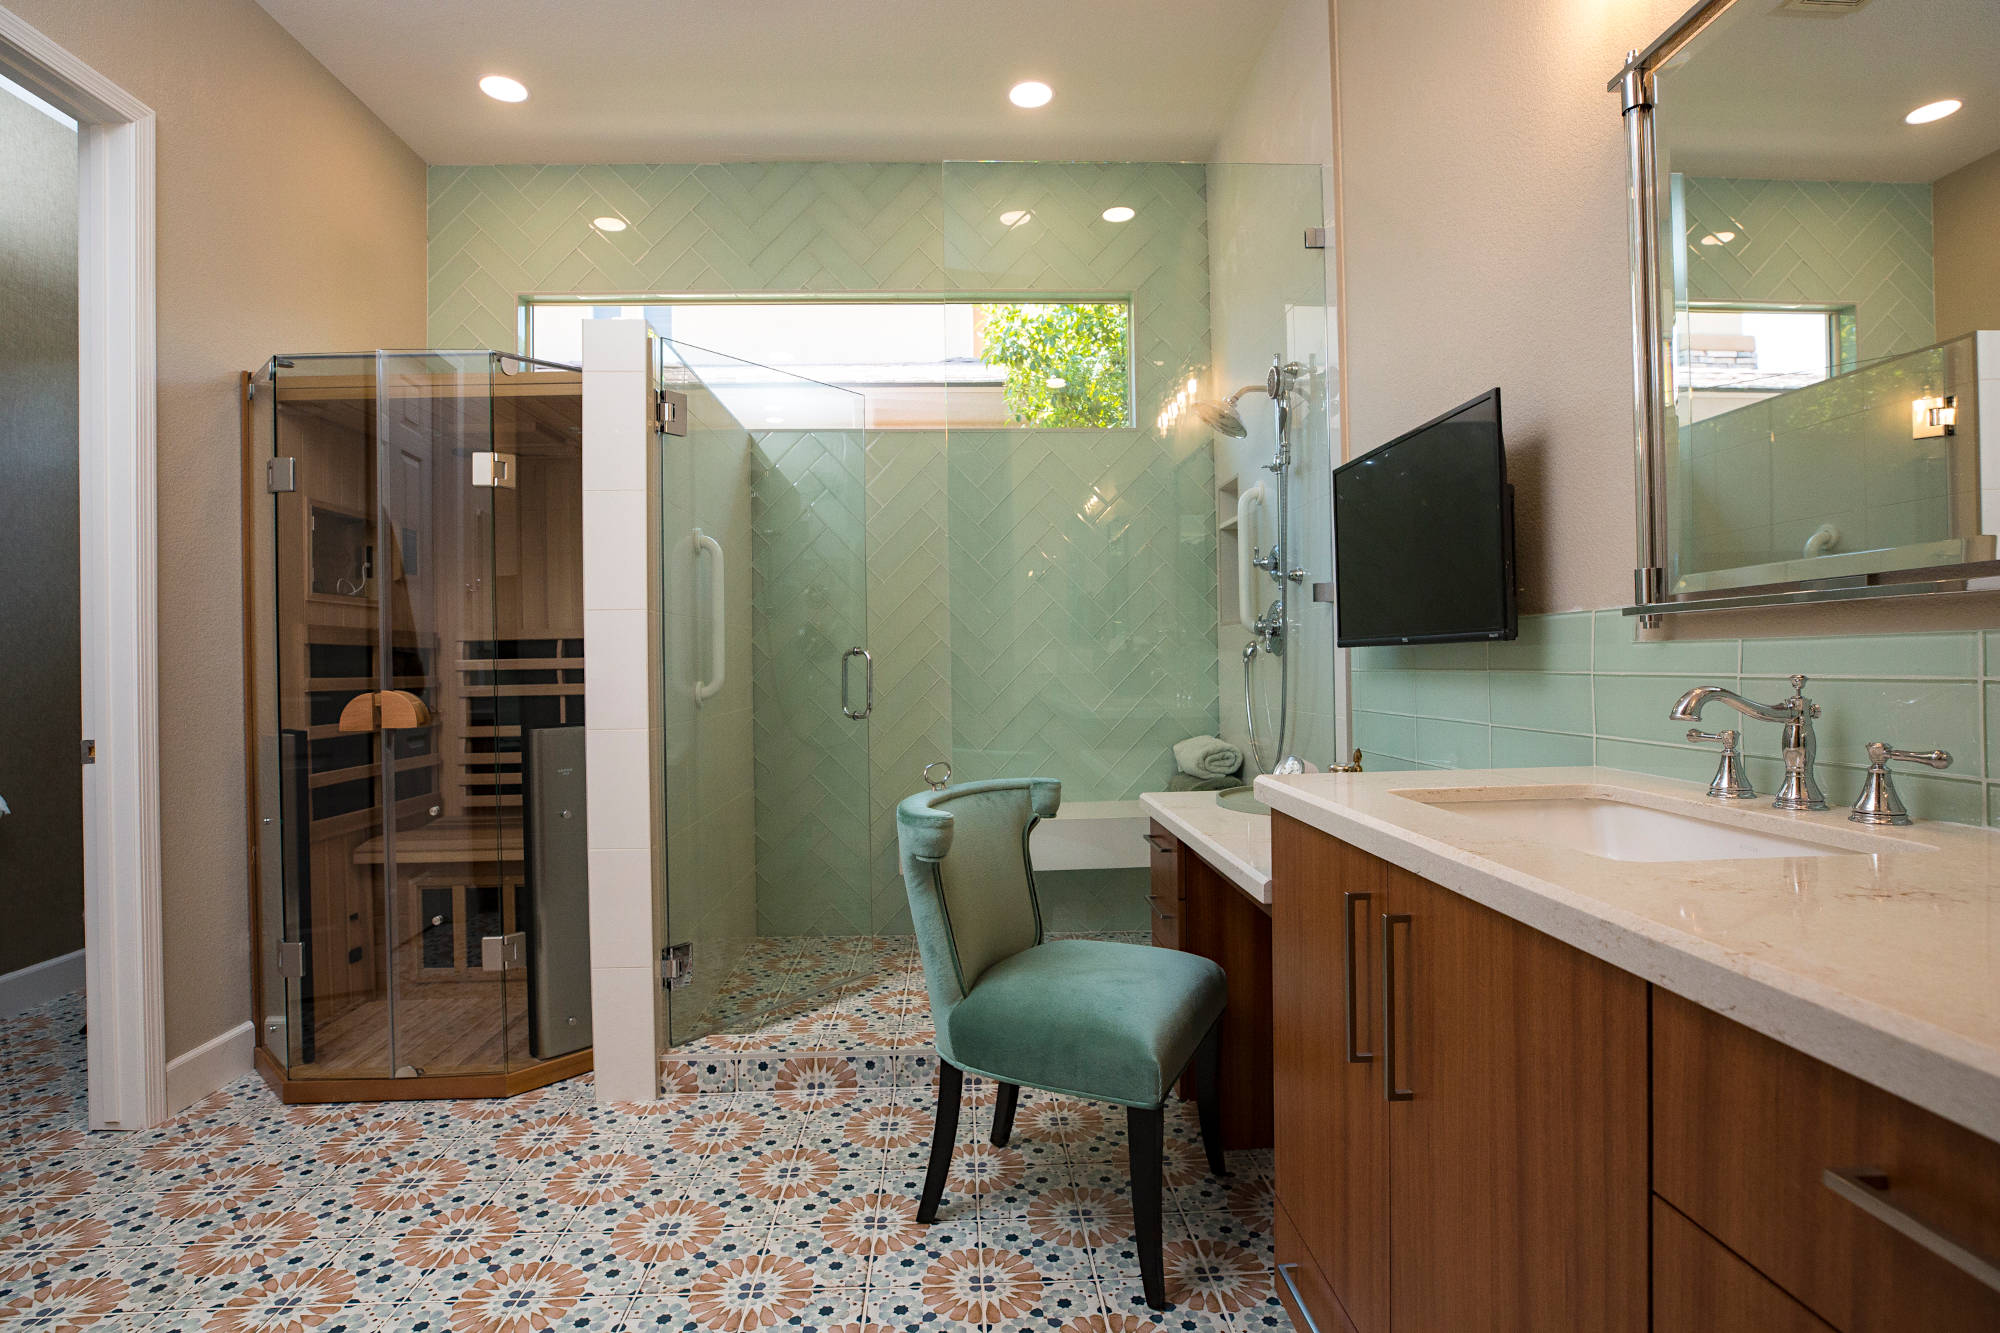 Master bath with large walk-in shower and dry one person sauna.